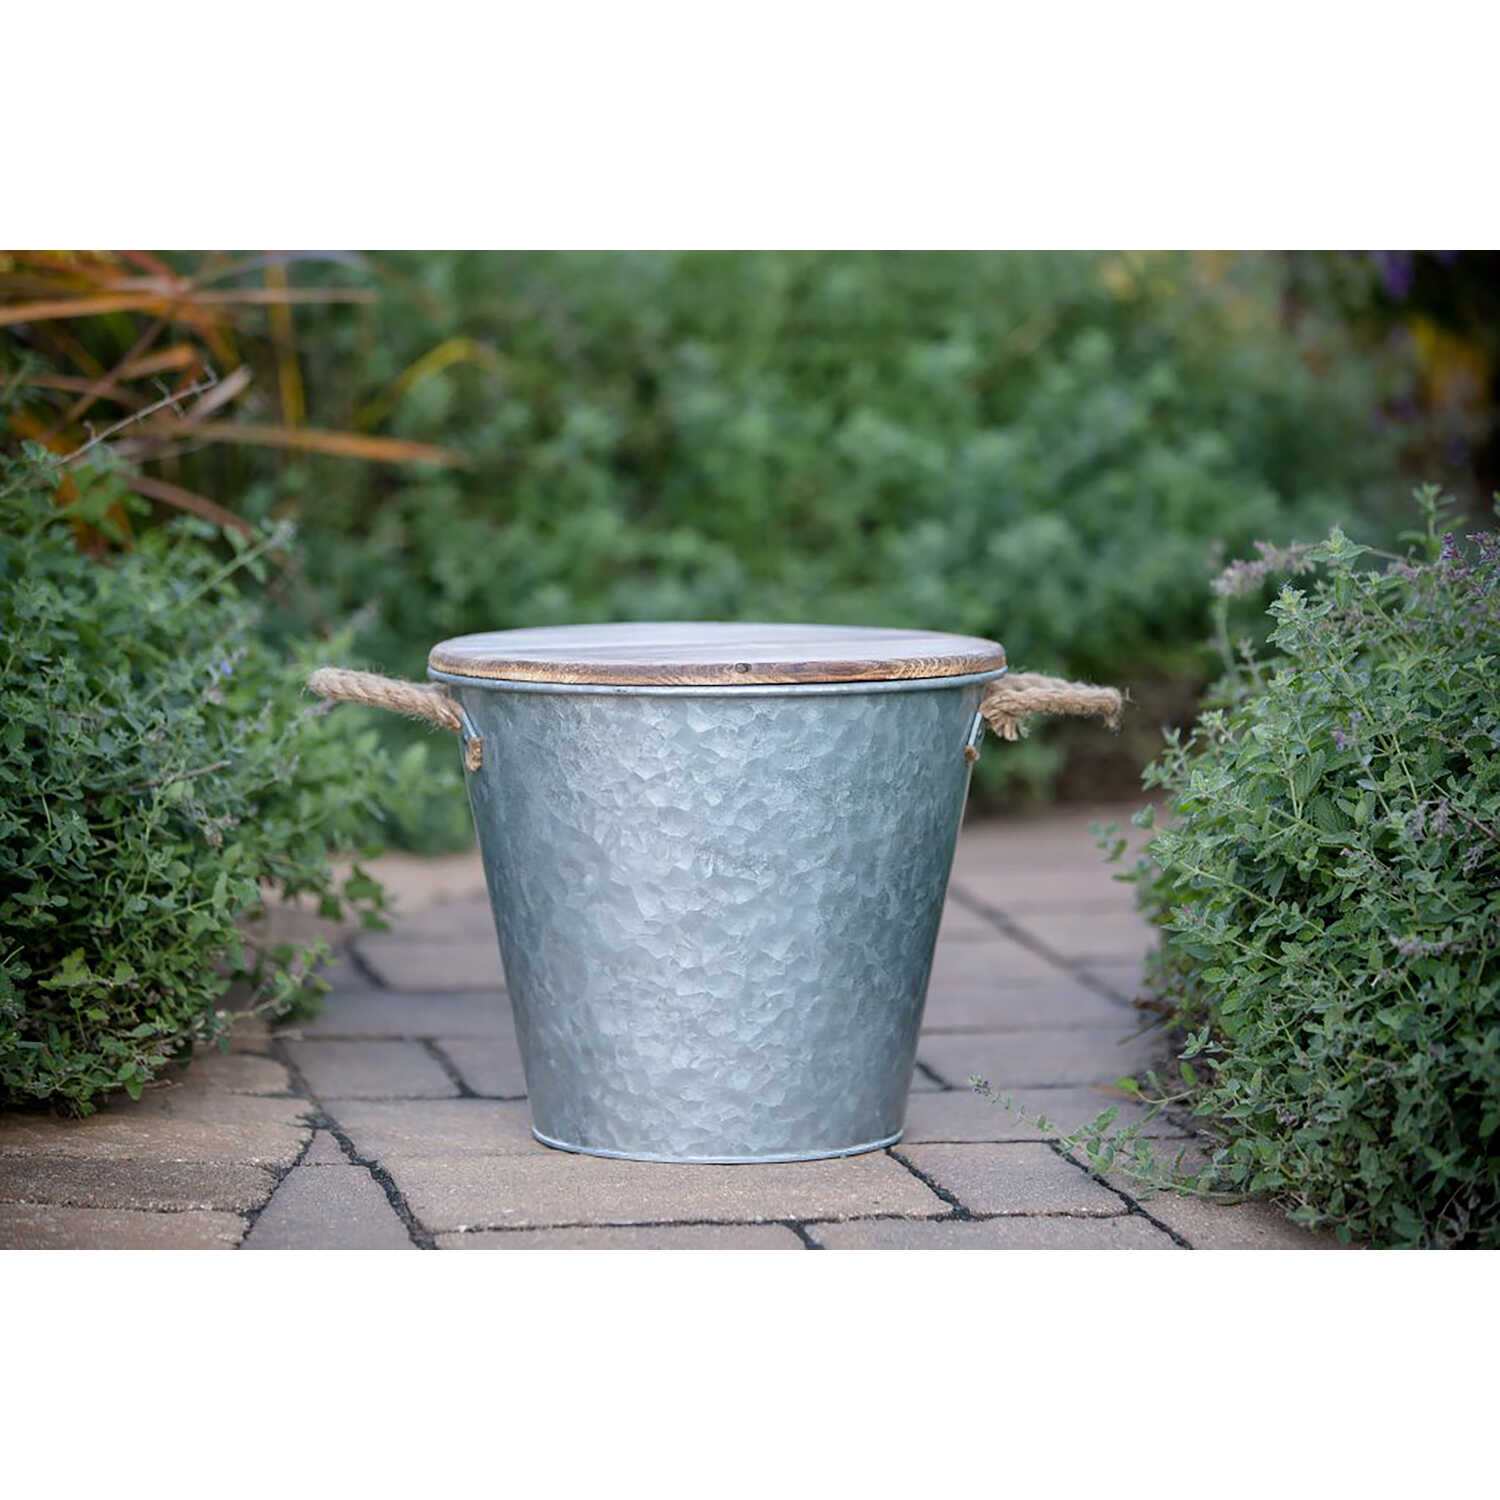 Patio Essentials  Galvanized Bucket  Candle  Solid  For Flying Insects 132 oz.